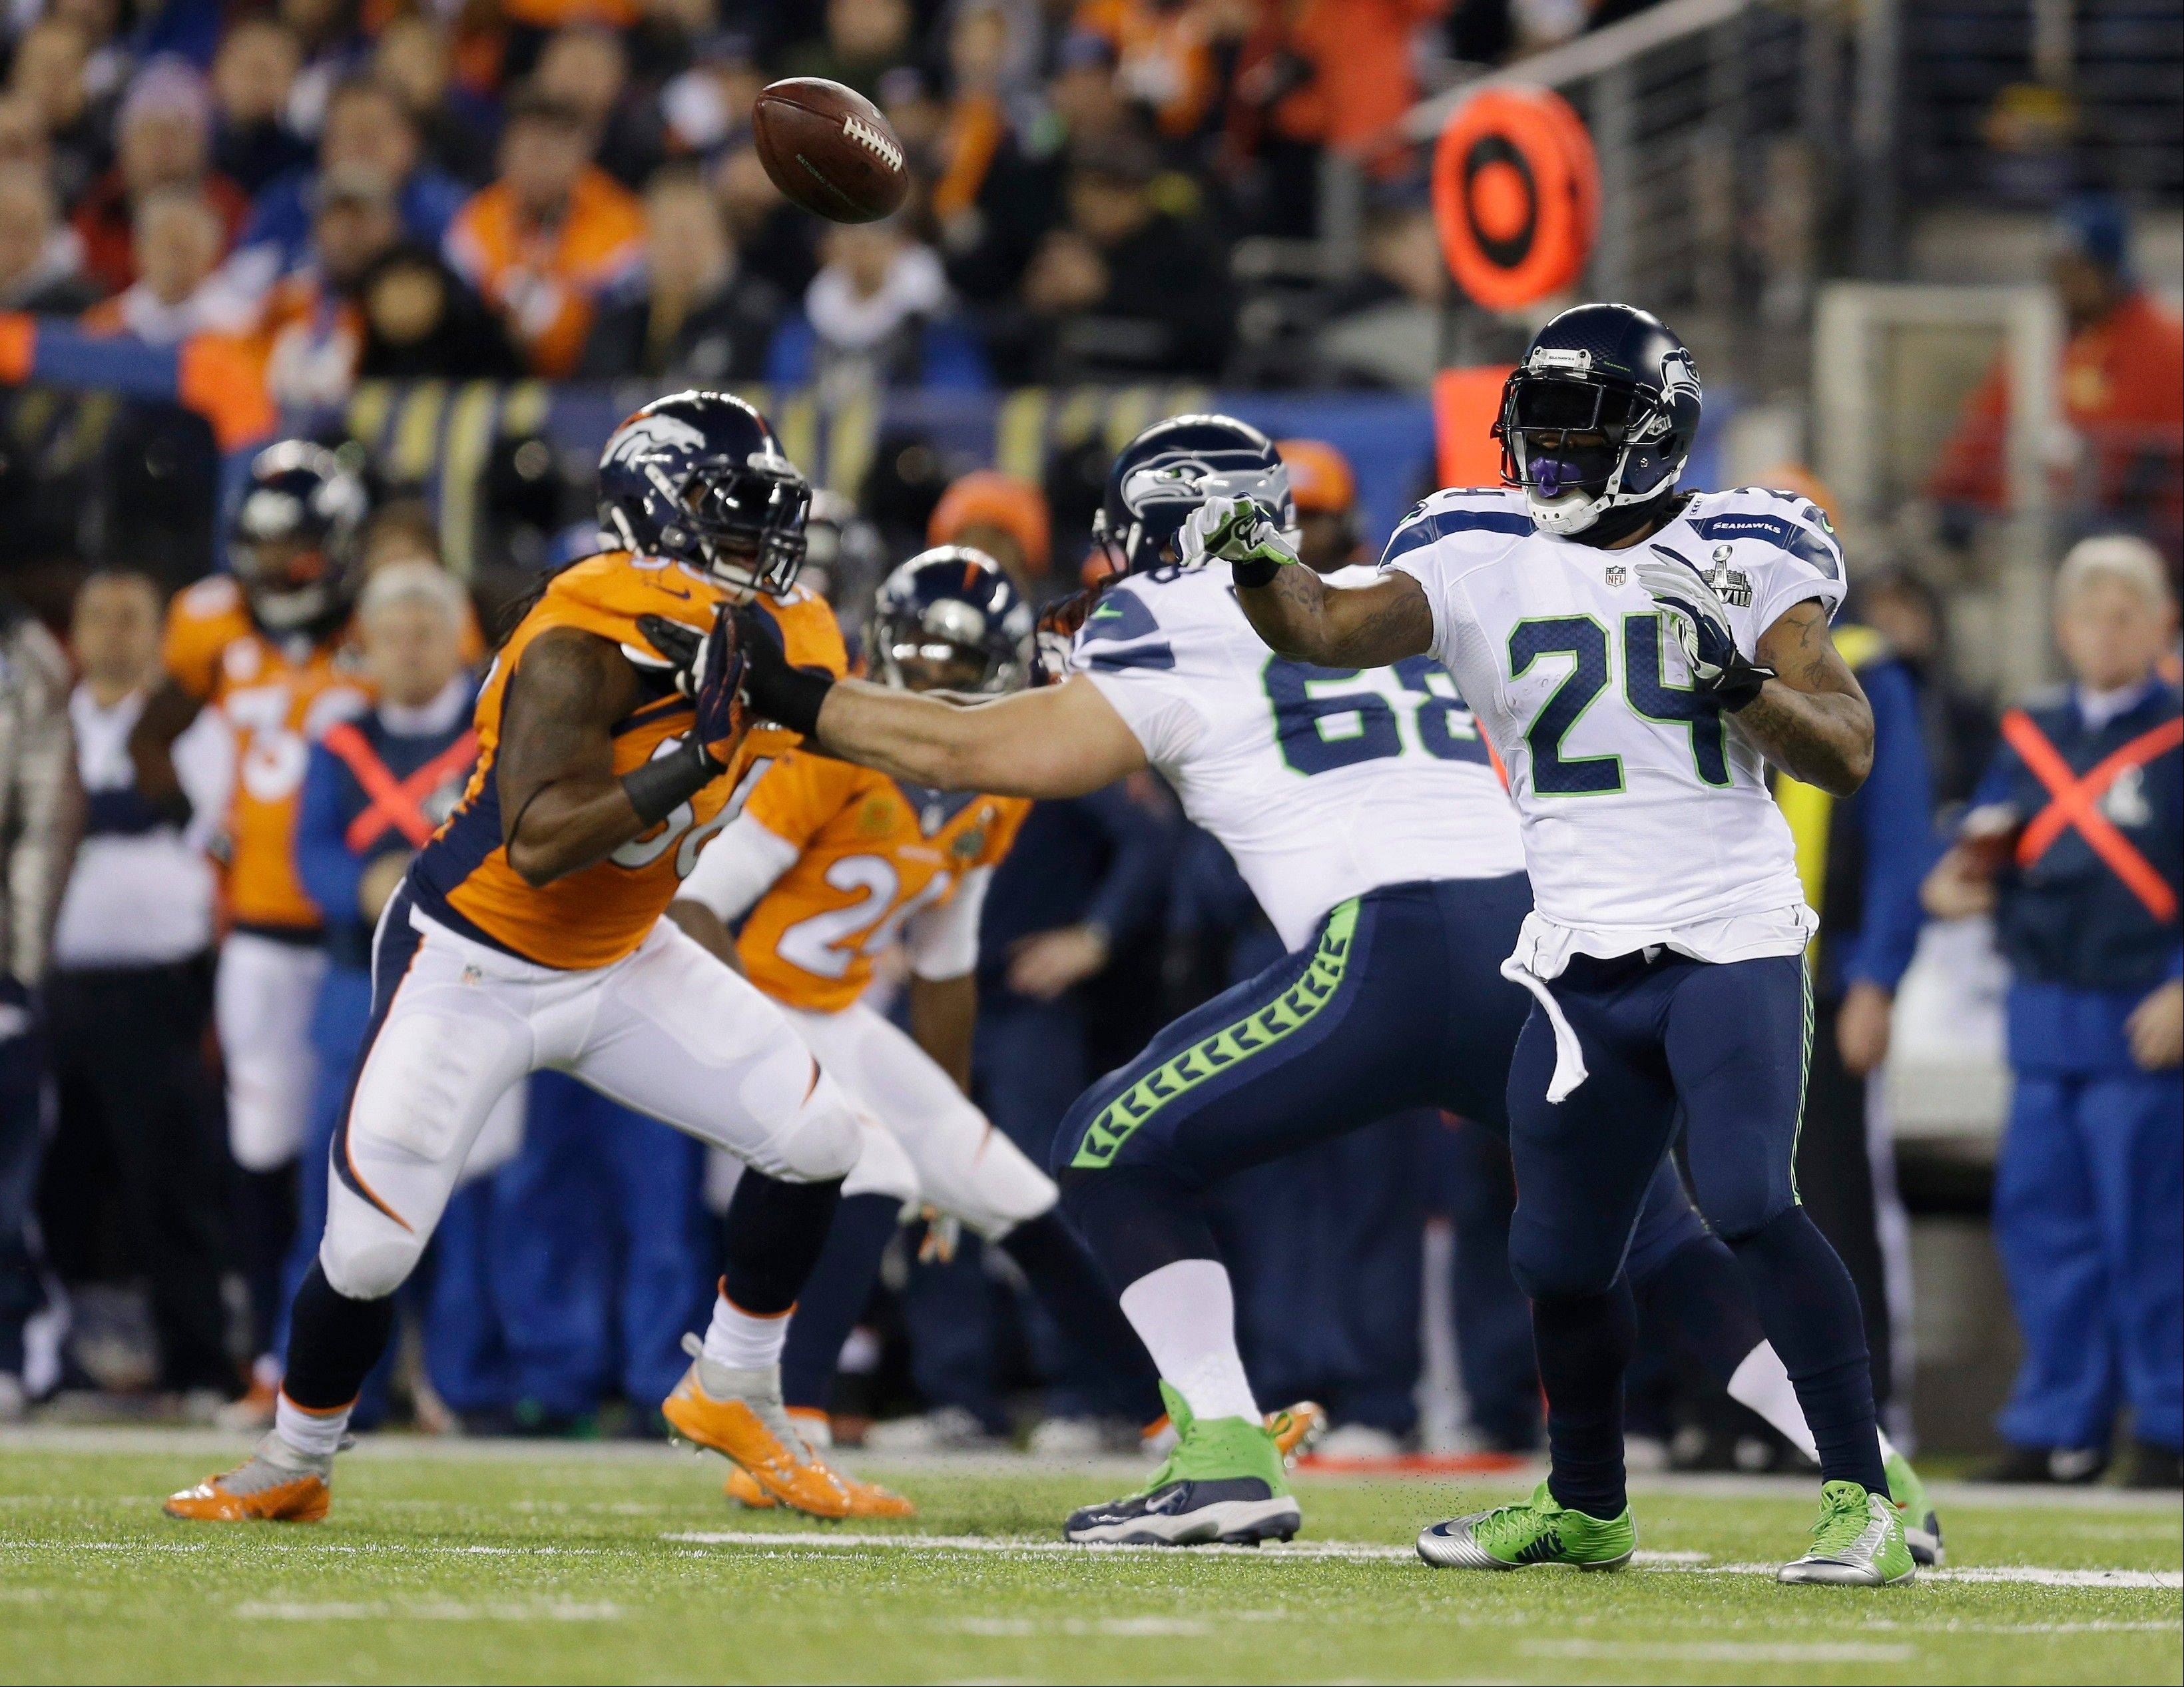 Seattle Seahawks' Marshawn Lynch (24) throws a pass to teammate Russell Wilson during the first half.